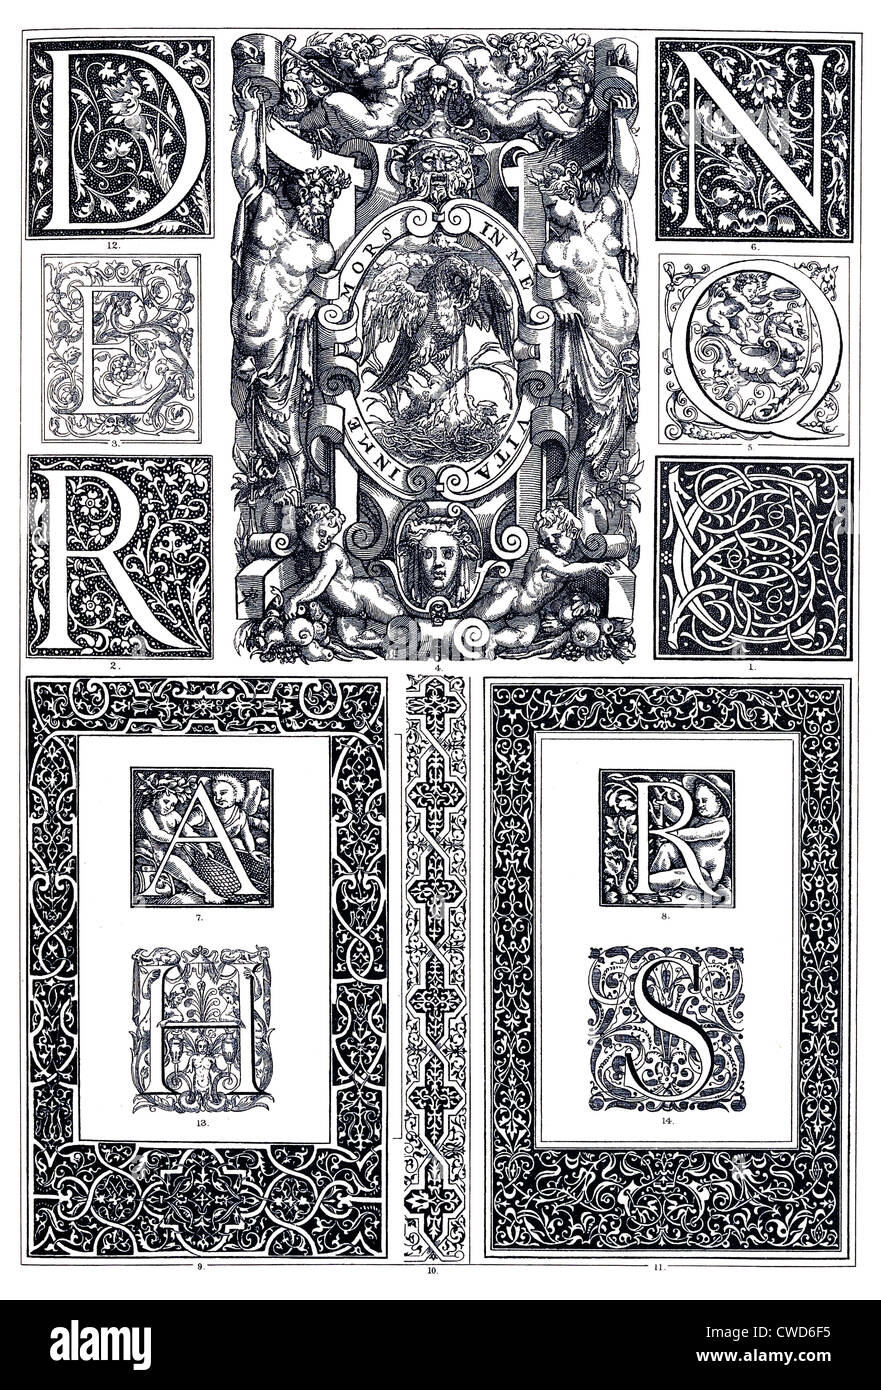 Renaissance French typographical ornaments - Stock Image